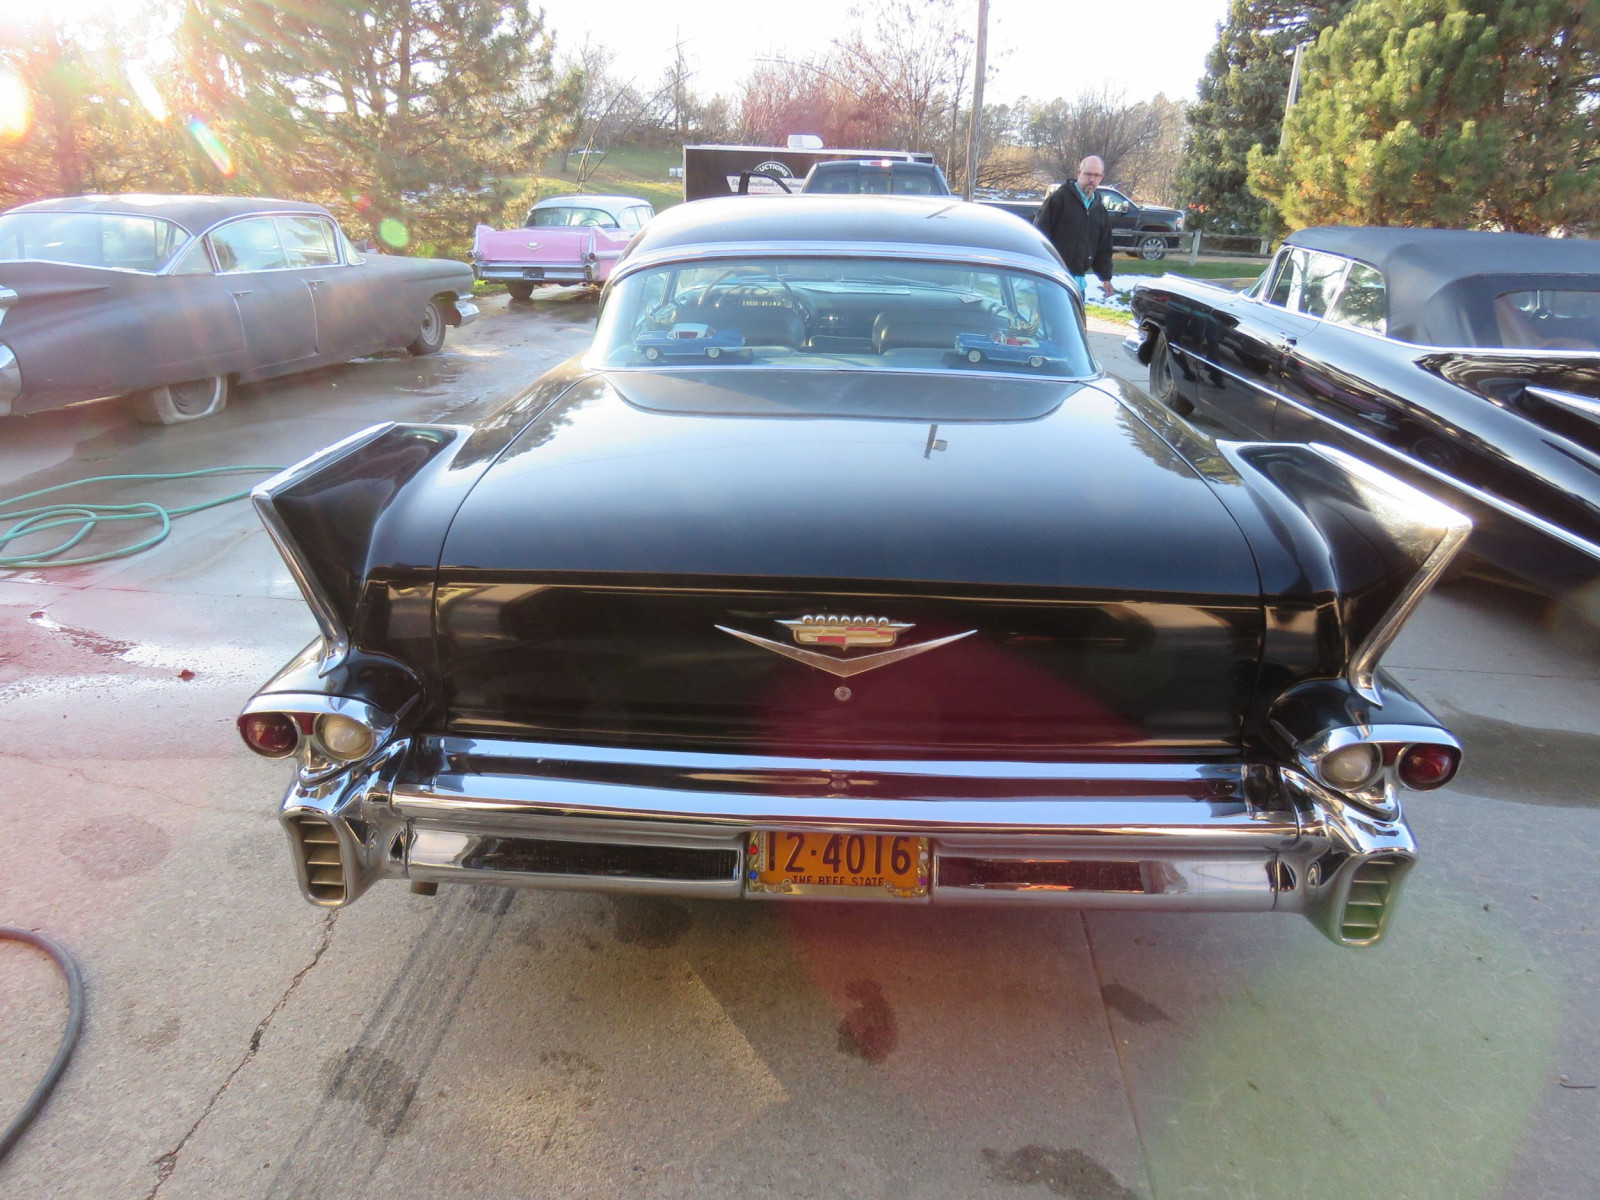 1958 Cadillac Coupe DeVille - Image 5